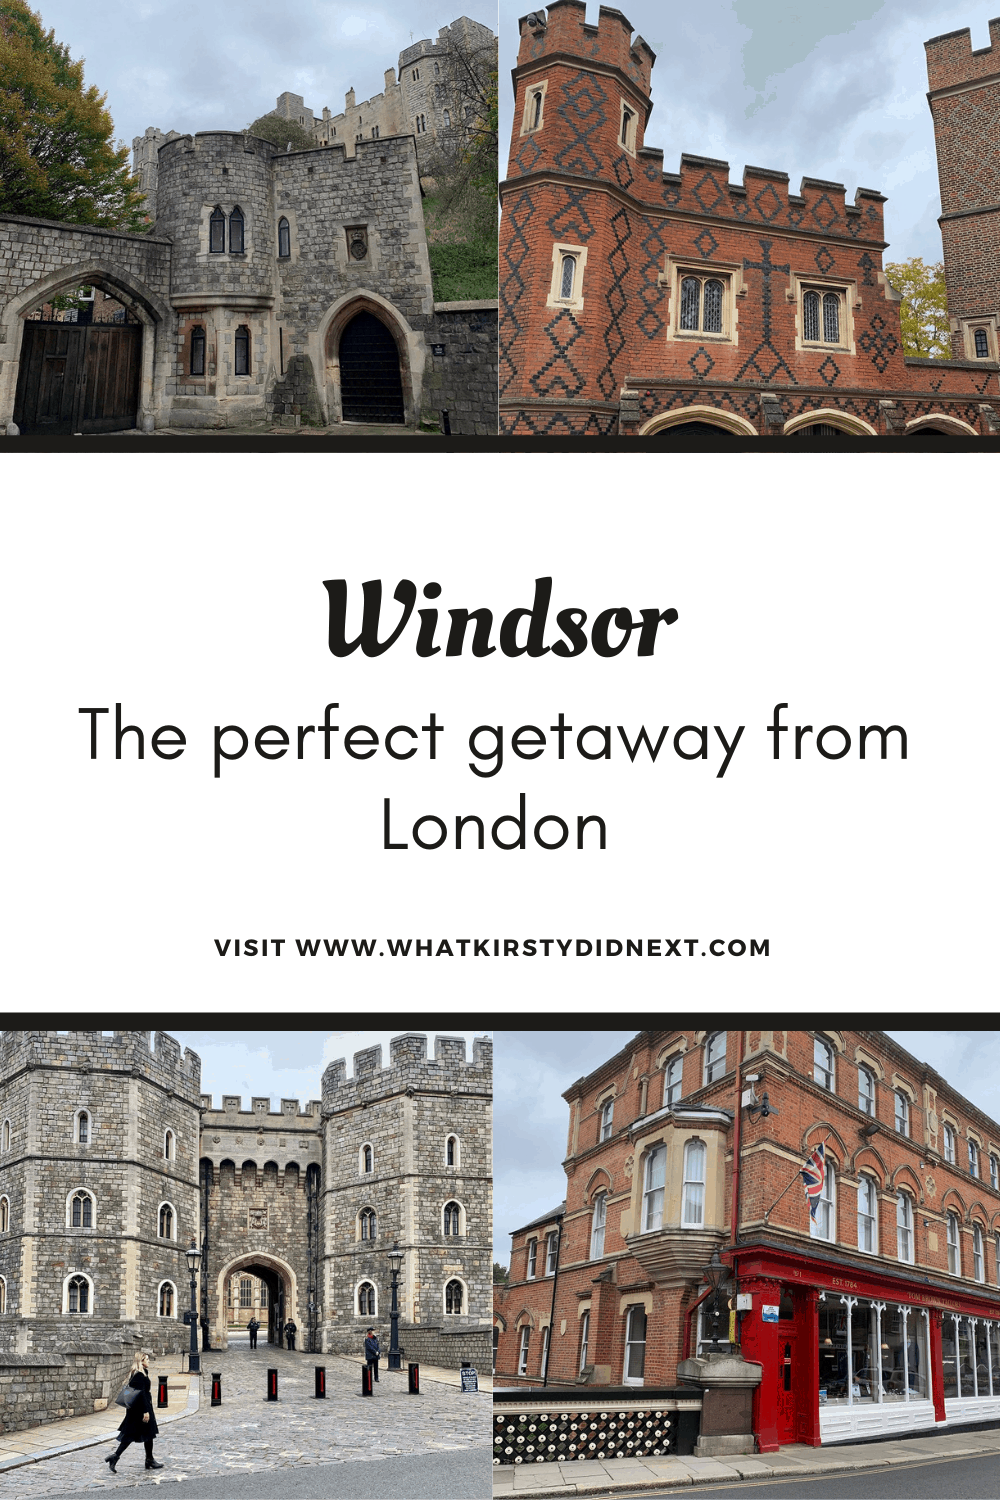 Windsor is the perfect getaway from London